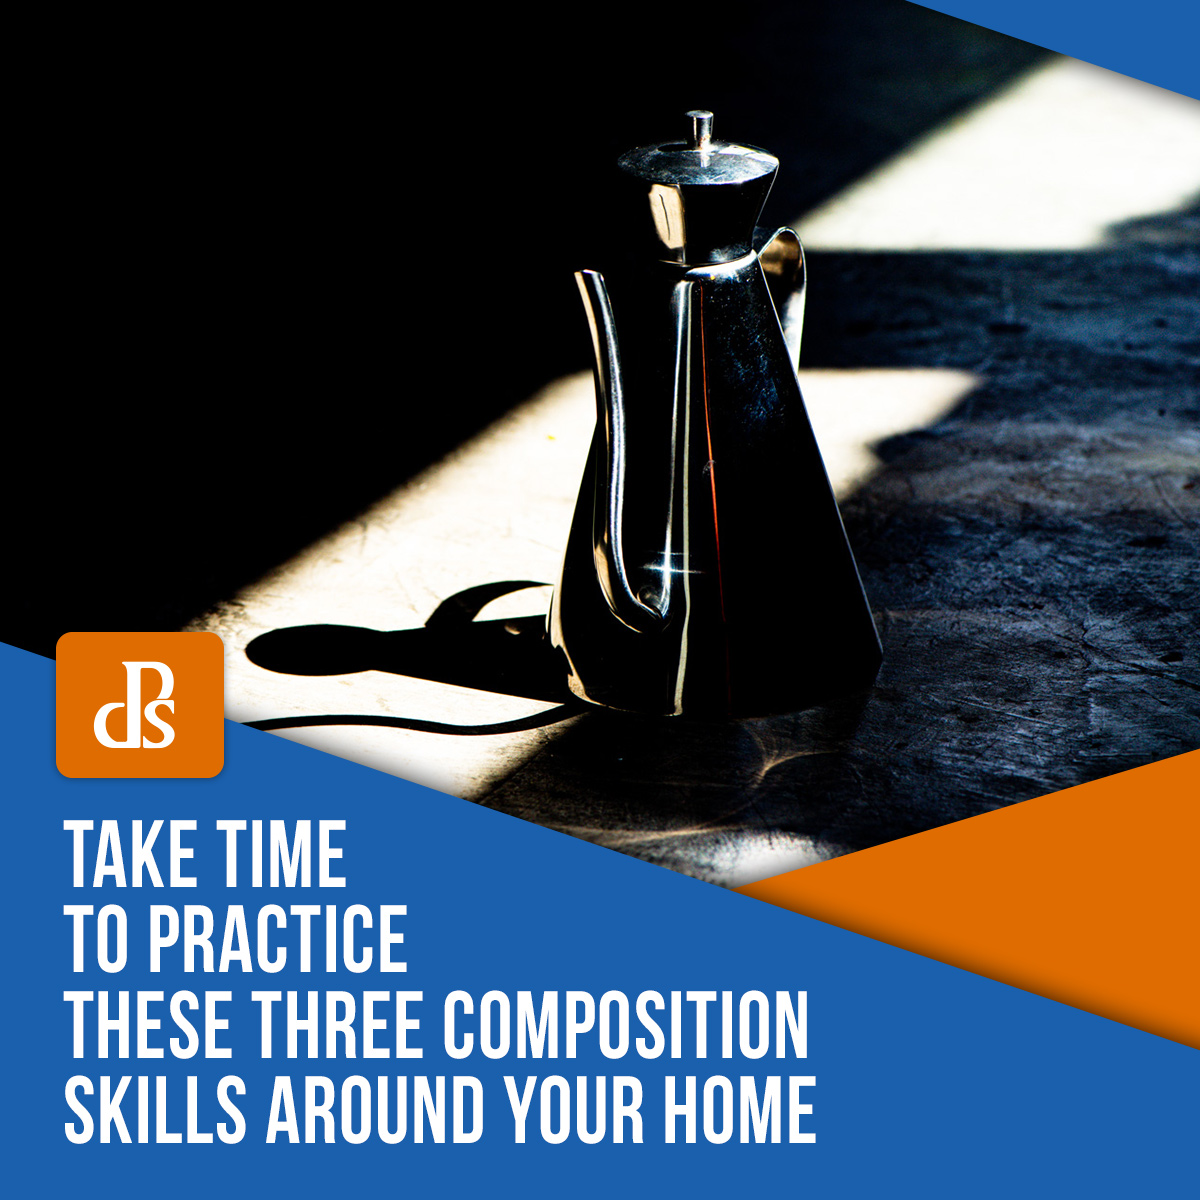 Practice composition skills around your home featured image